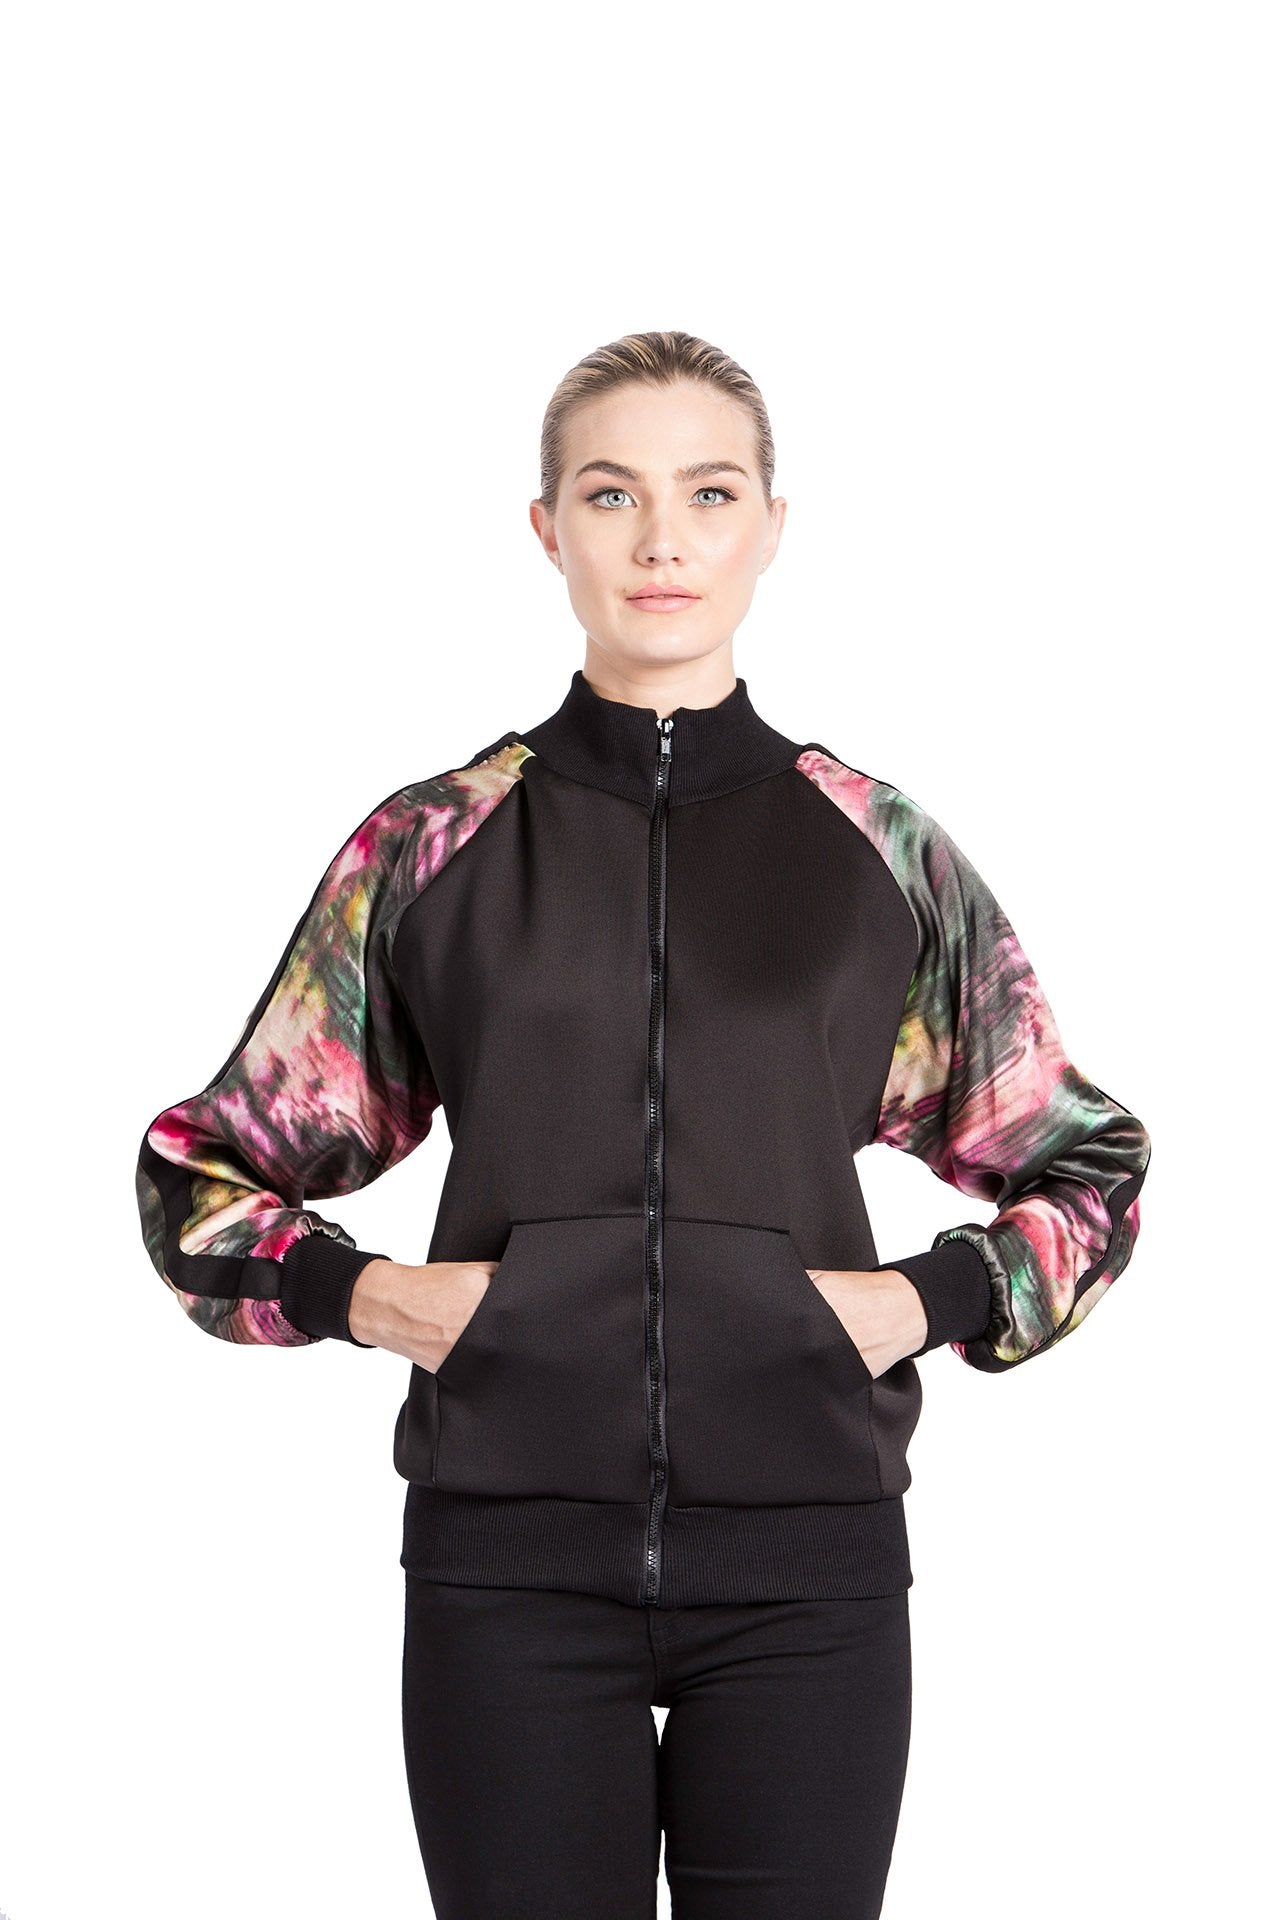 Allover Bomber Jacket - Rose Graphite Print Jackets - artTECA